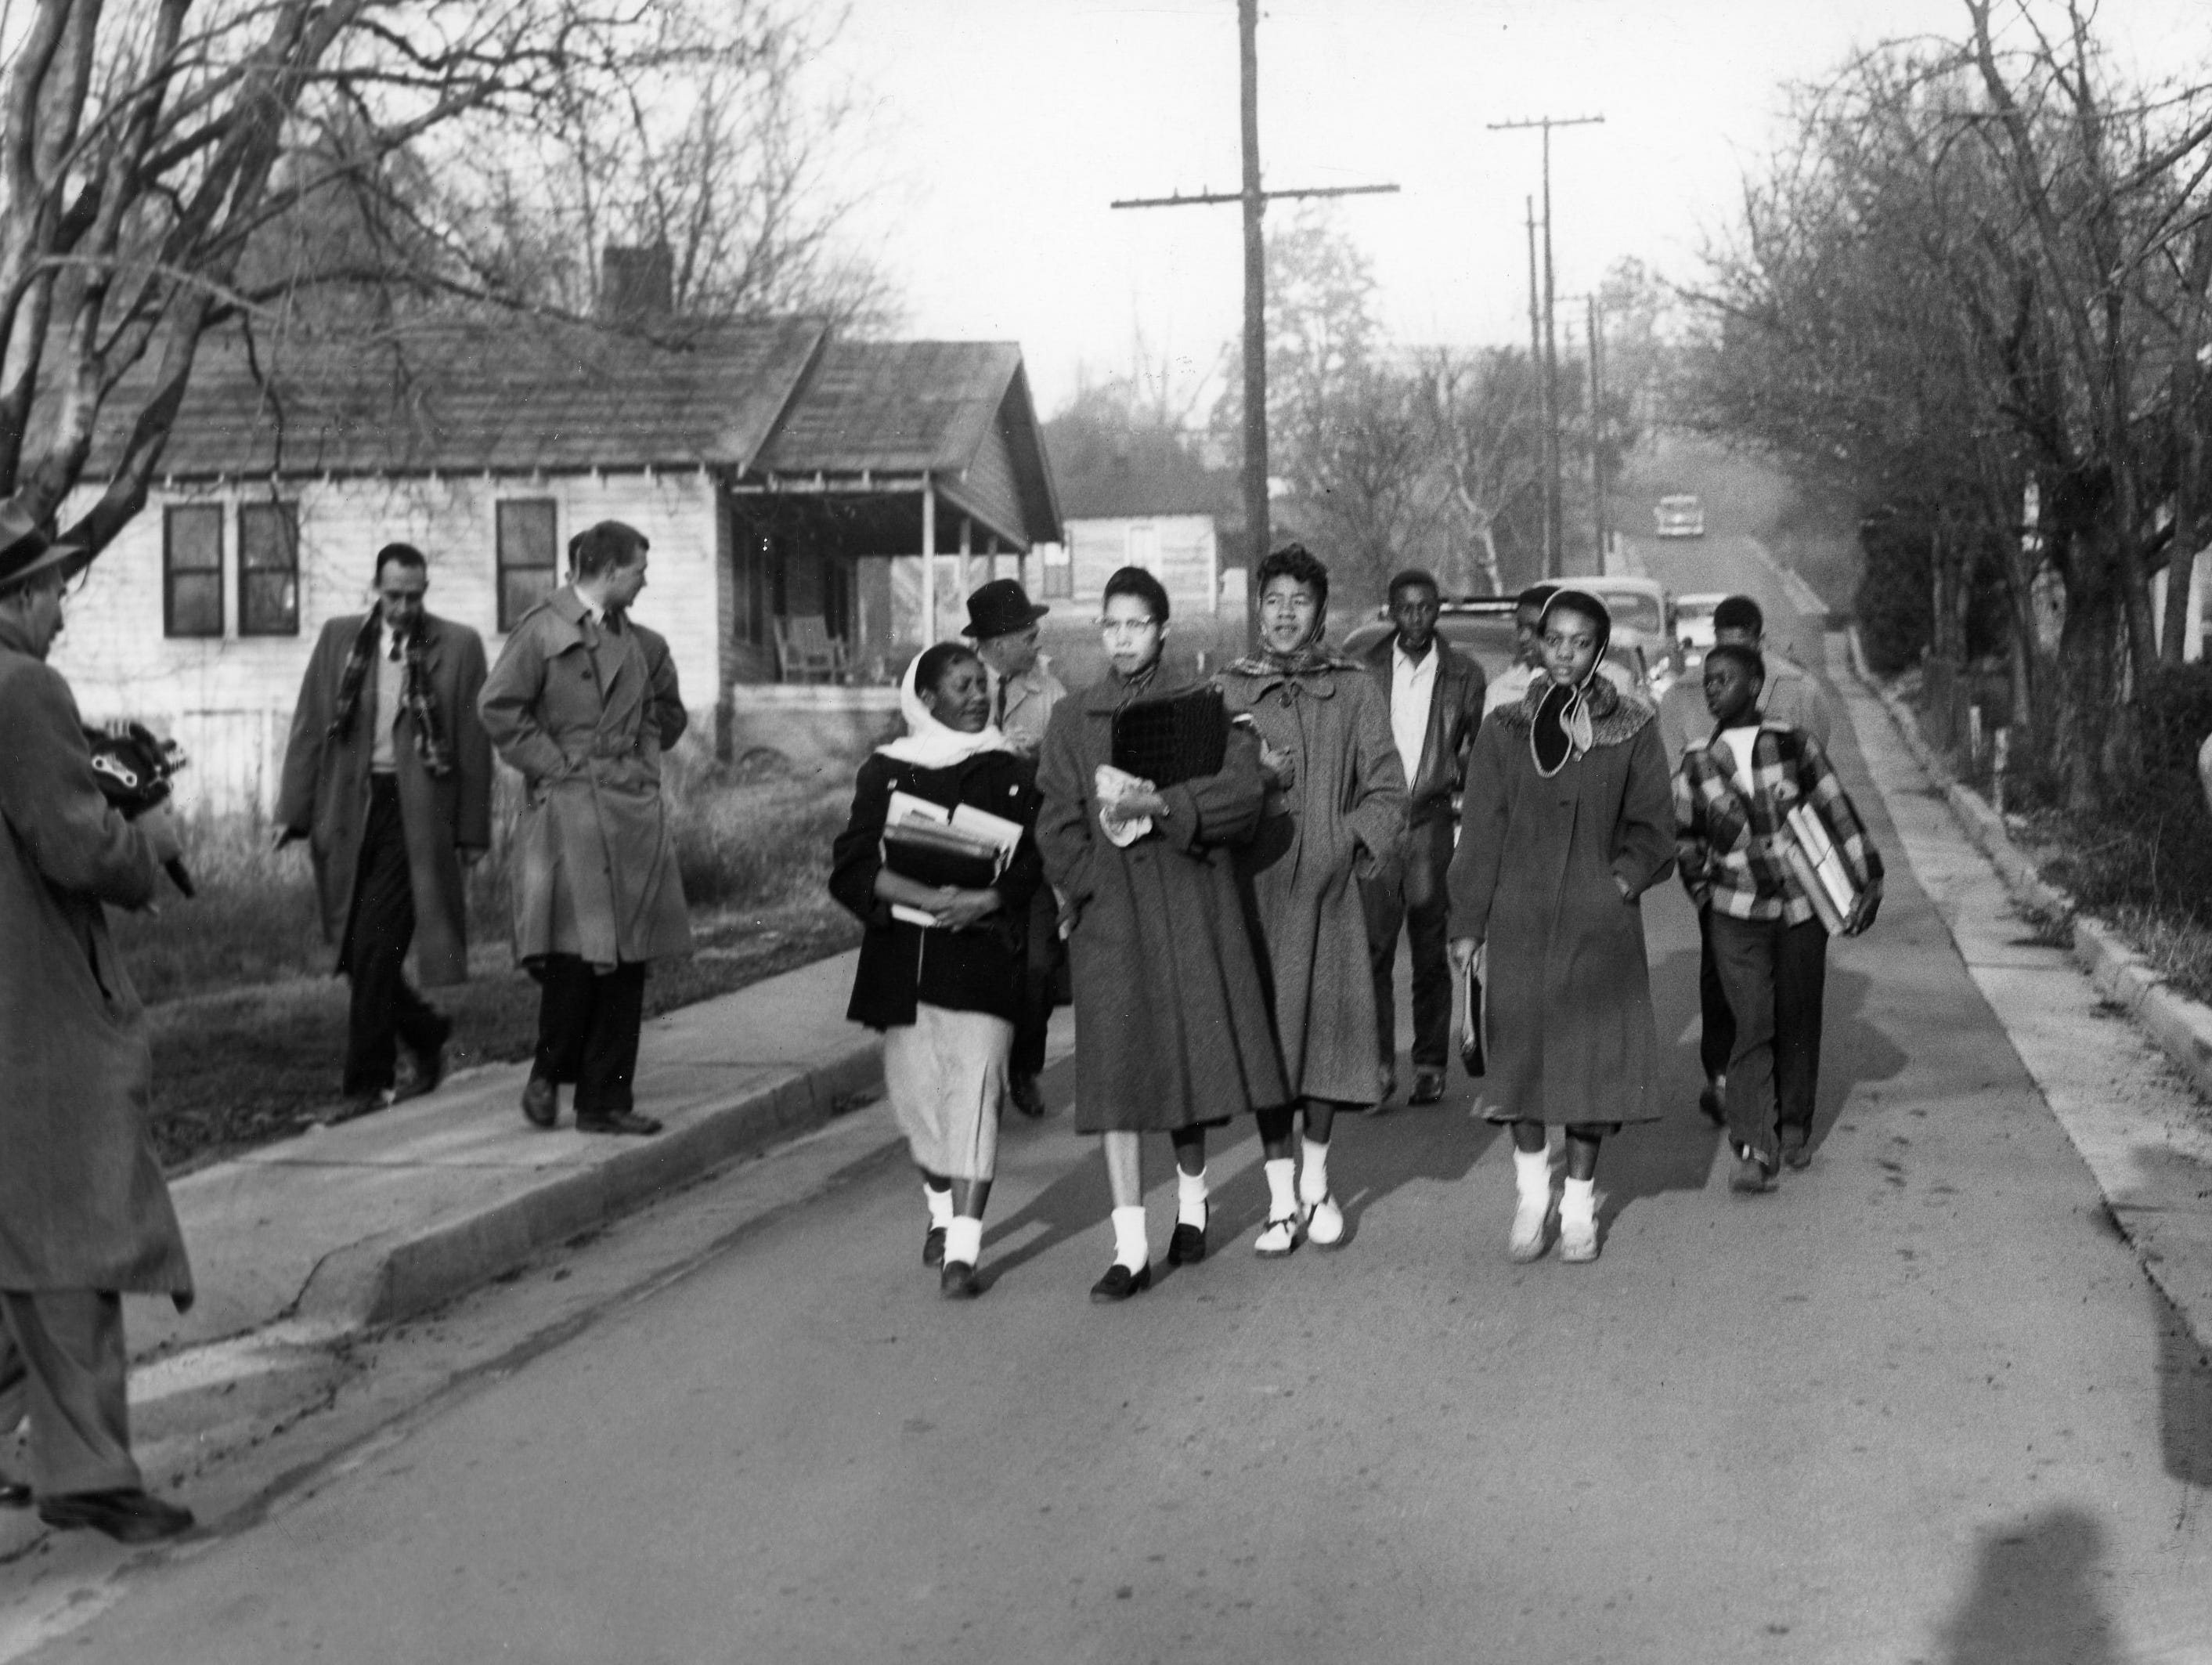 Members of the Clinton 12 walk to Clinton High School in December 1956 after unrest flared again. Dated: Dec. 10, 1956.